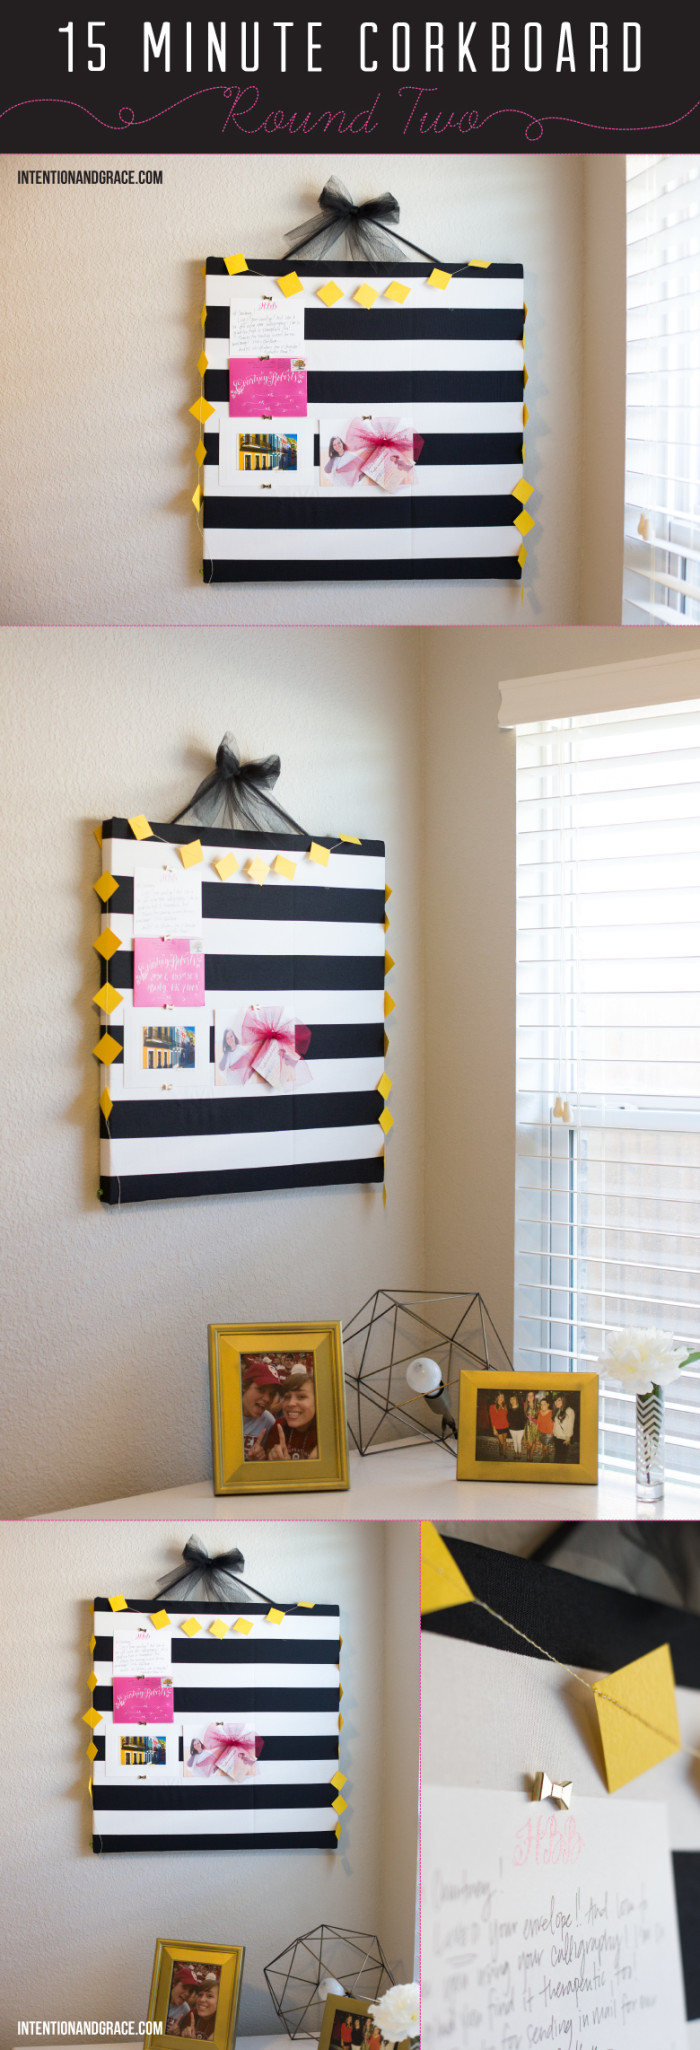 Make a Ten Dollar Striped Corkboard in Ten minutes with this easy DIY  |  intentionandgrace.com